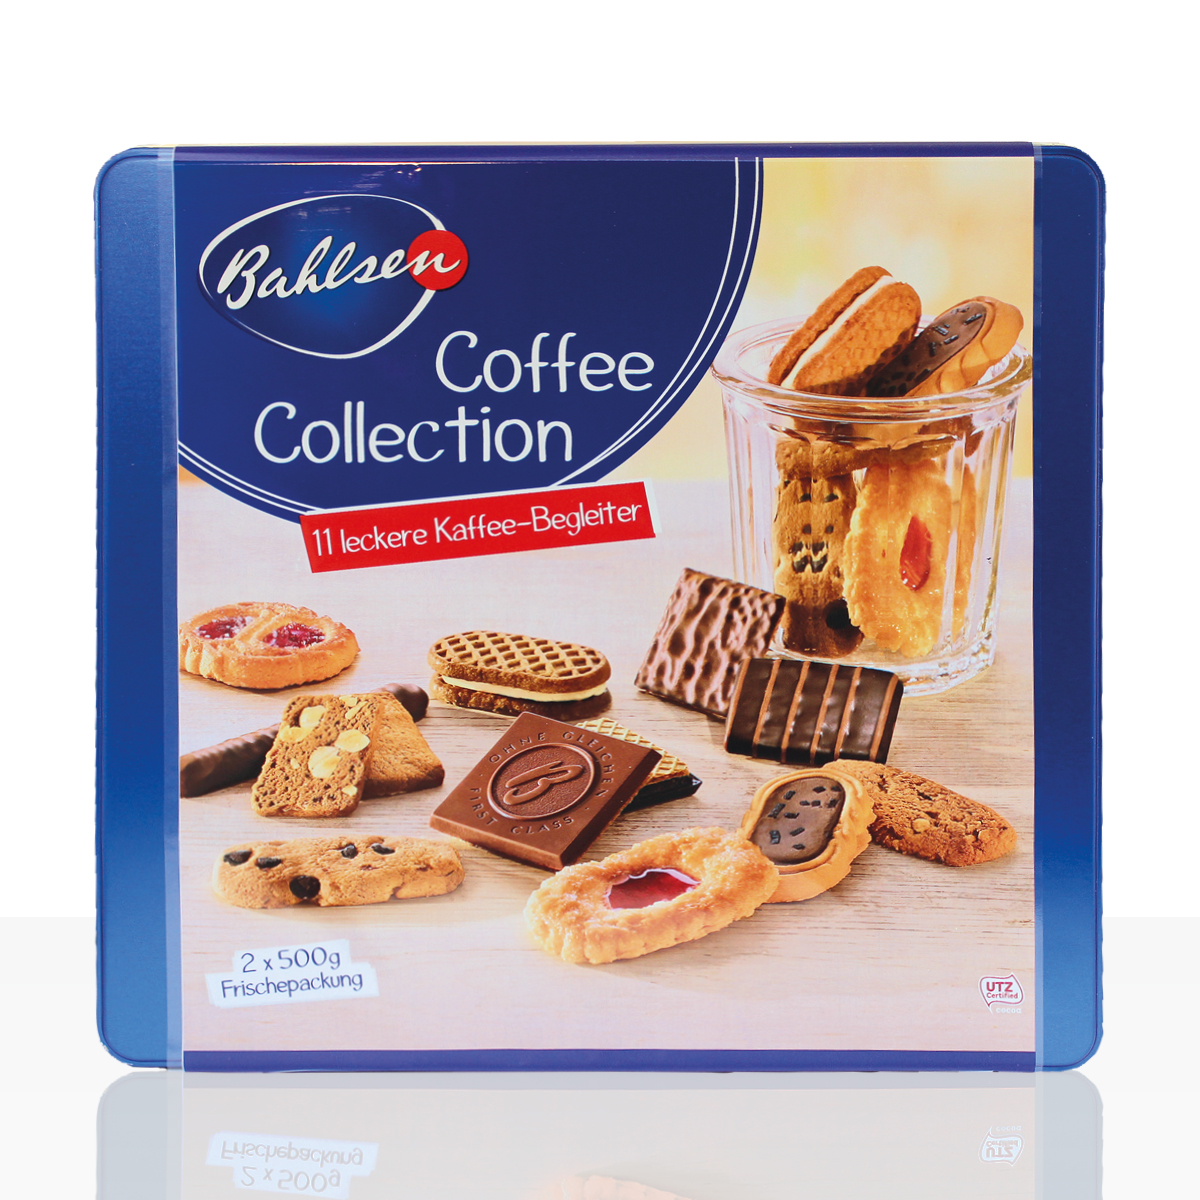 Sale - Bahlsen Coffee Collection Gebäck-Dose, 2 x 500g mit 11 Sorten - kurzes MHD